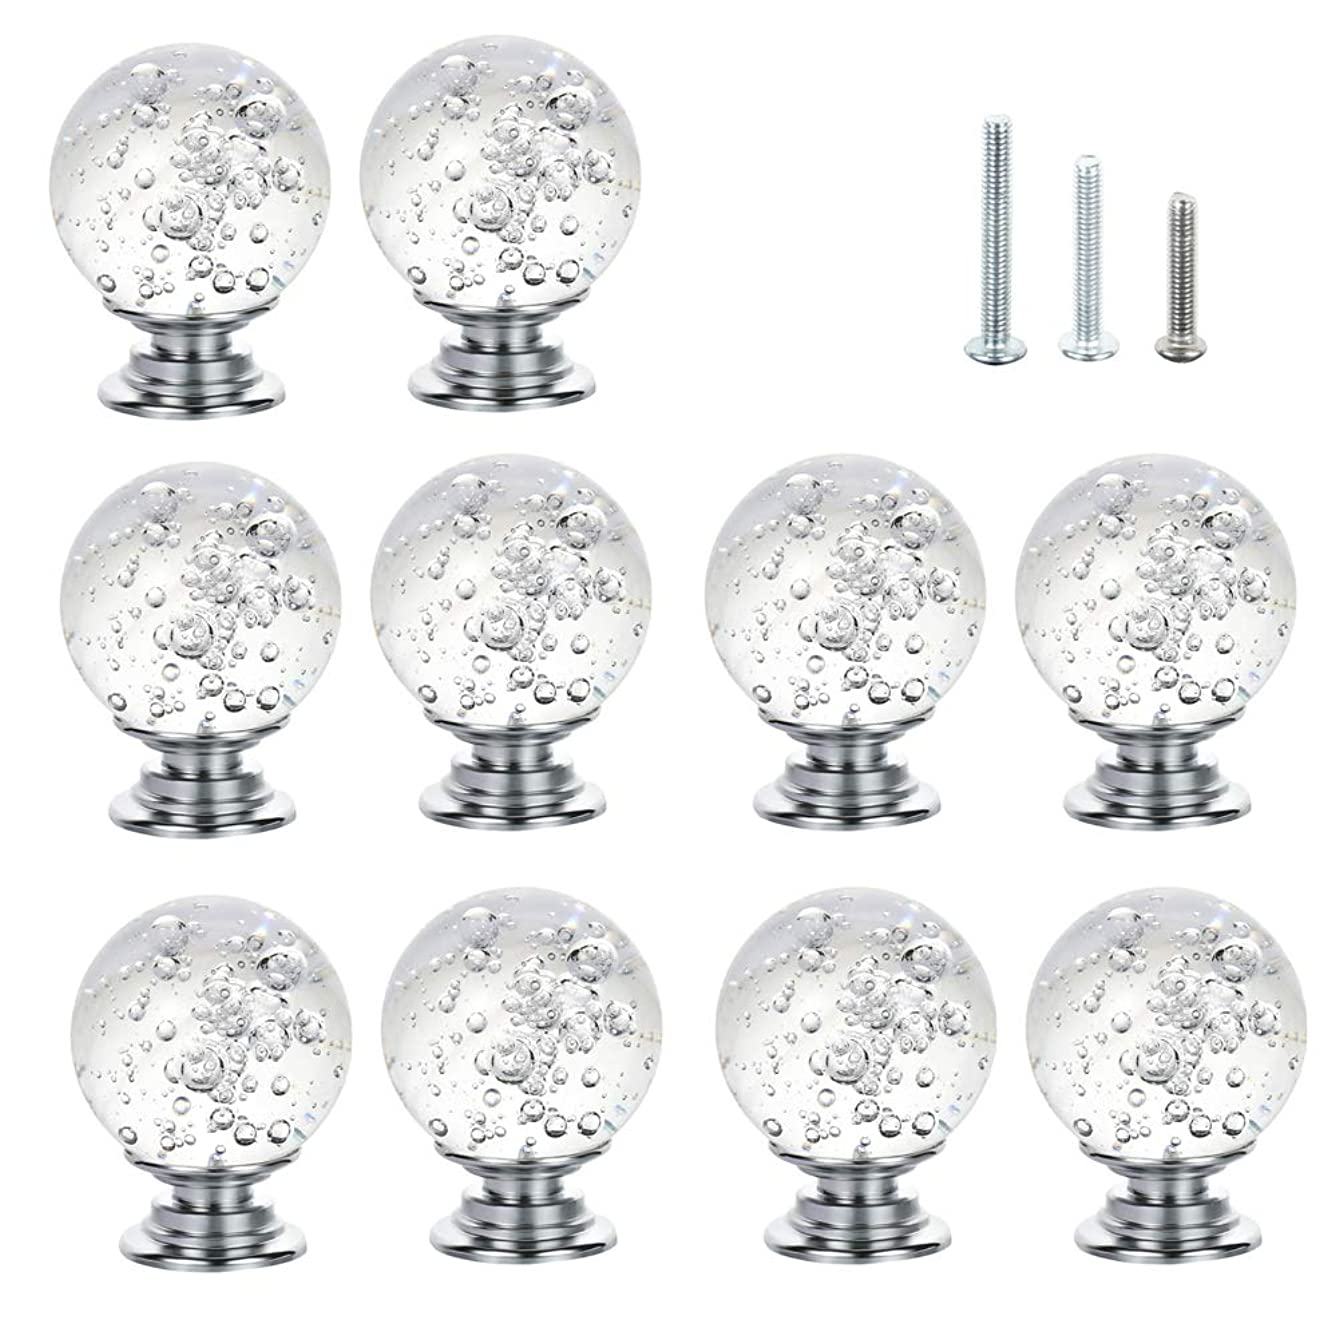 IFOLAINA 10 Pcs Crystal Cabinet Knobs Round Glass Kitchen Cupboard Drawer Dresser Bookcase Pull Handle with 3 Size Screws